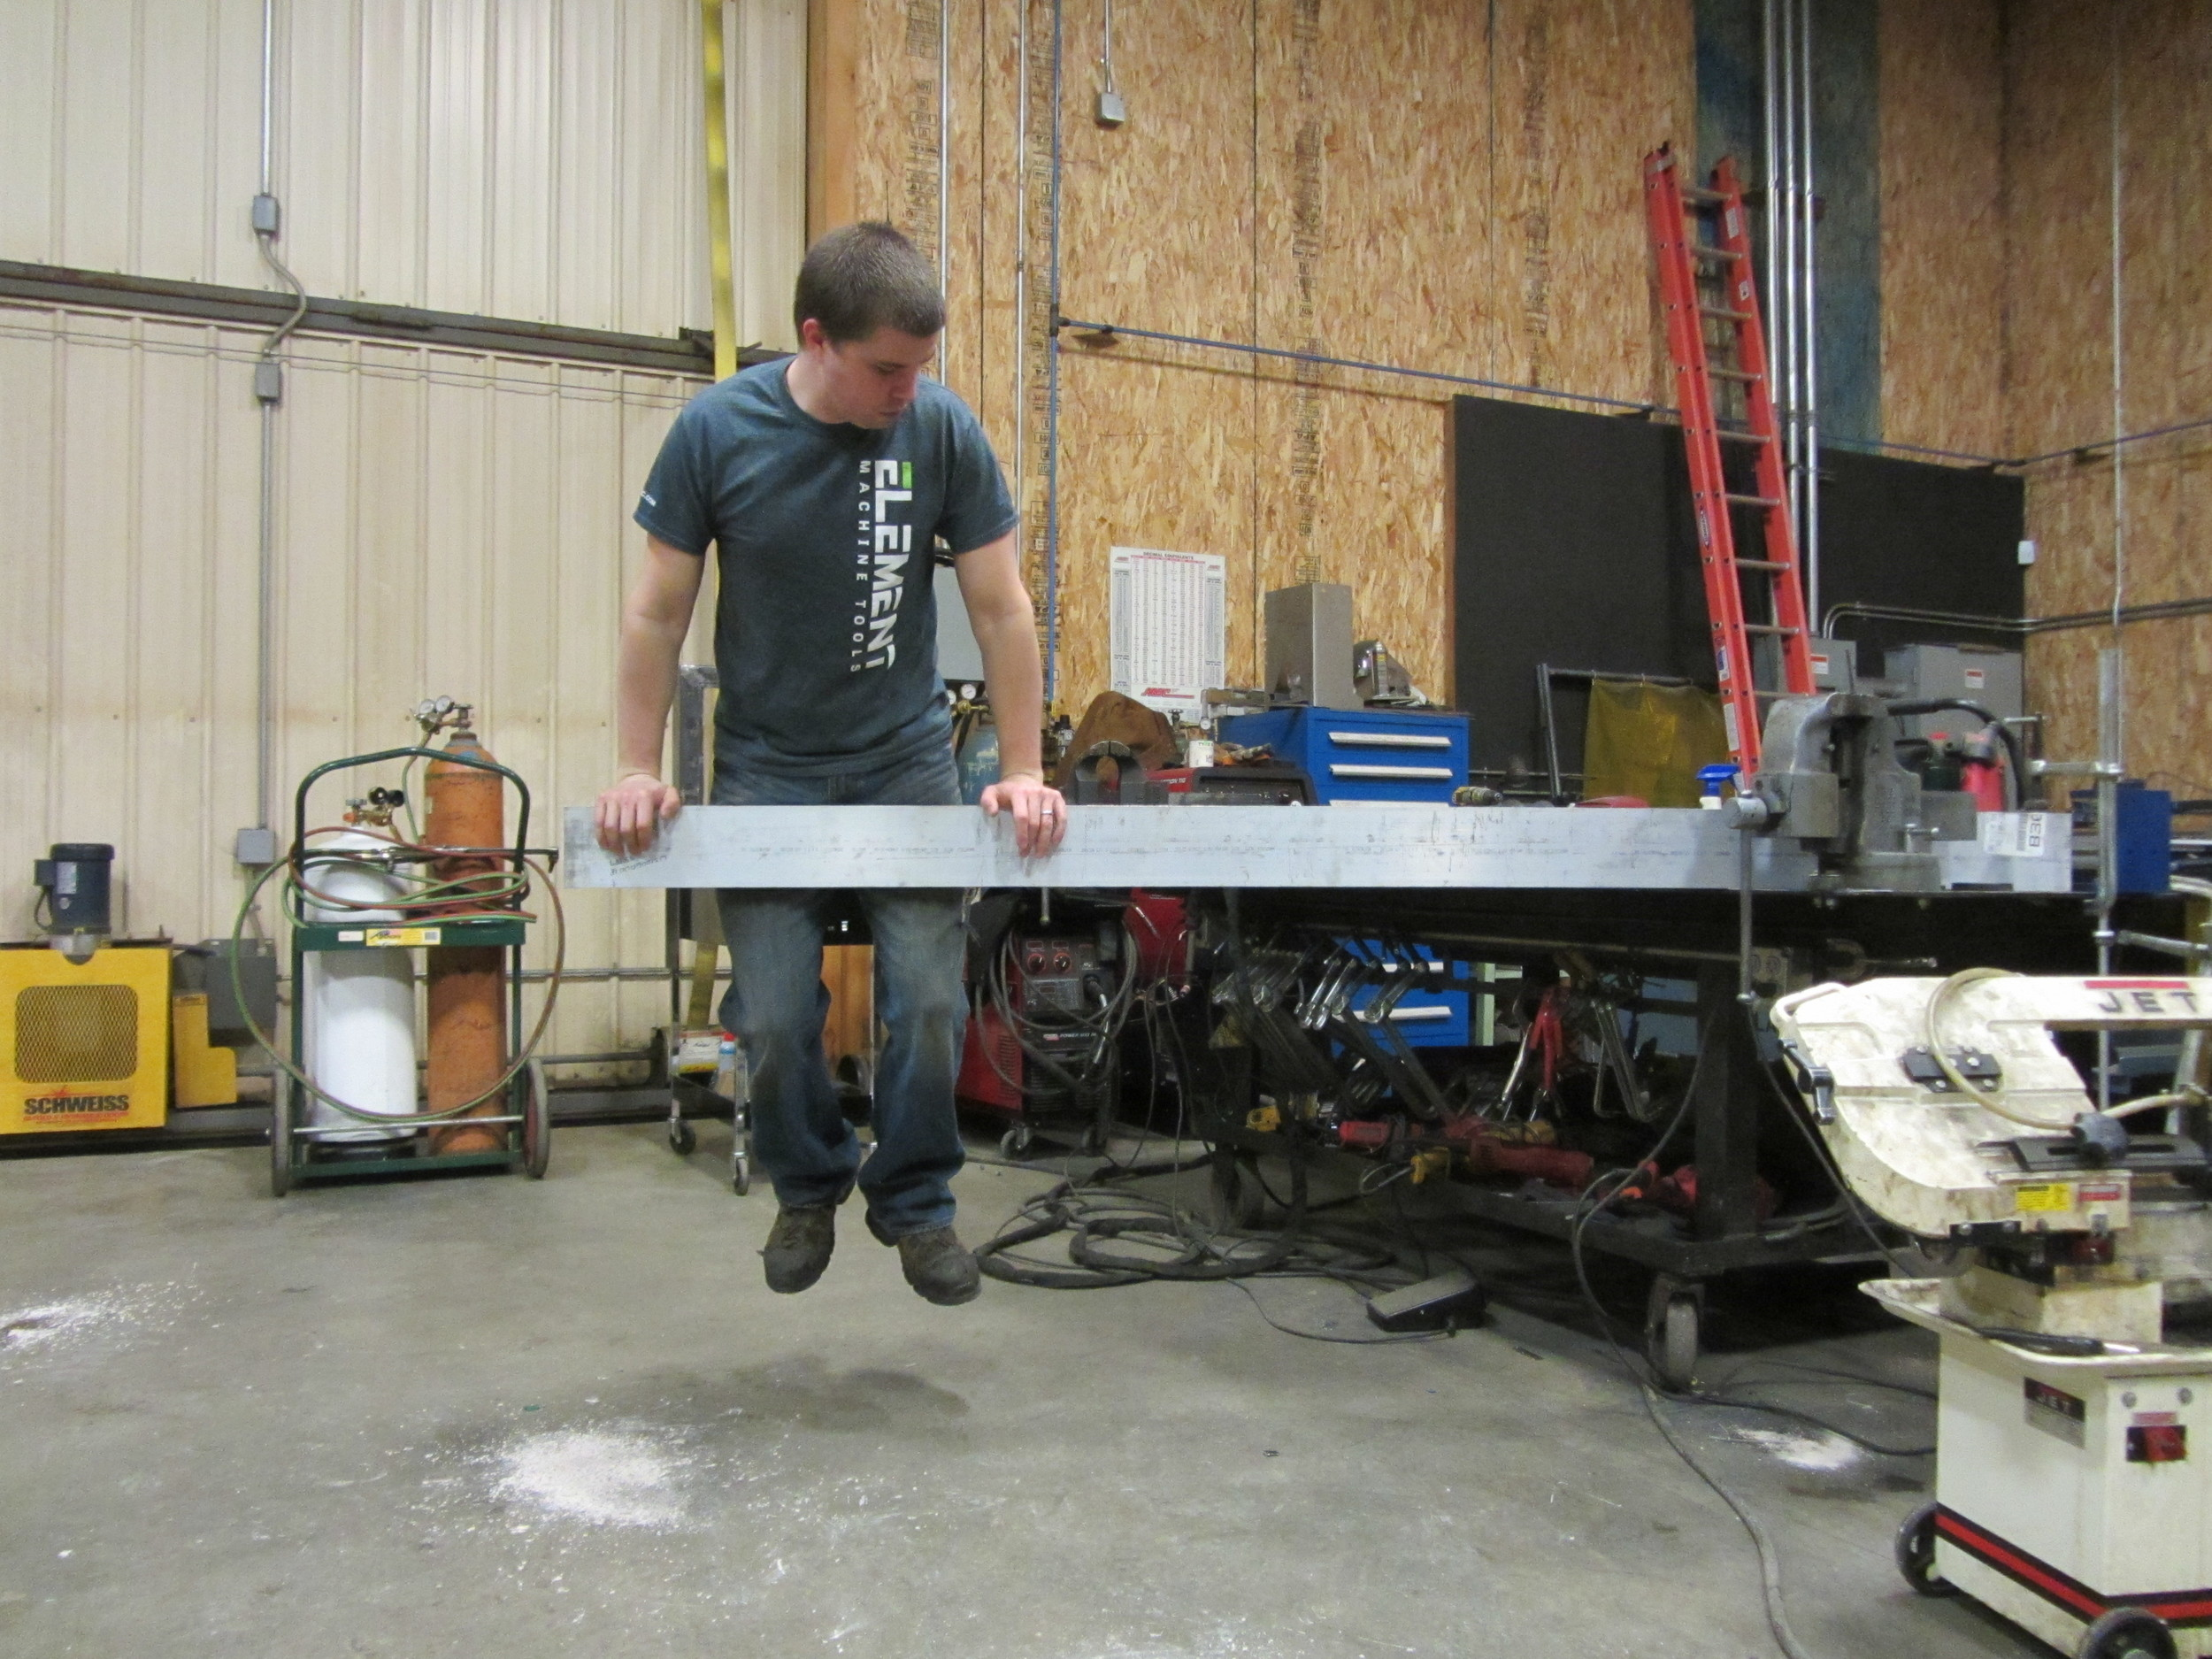 Testing the rigidity of the welding bench...